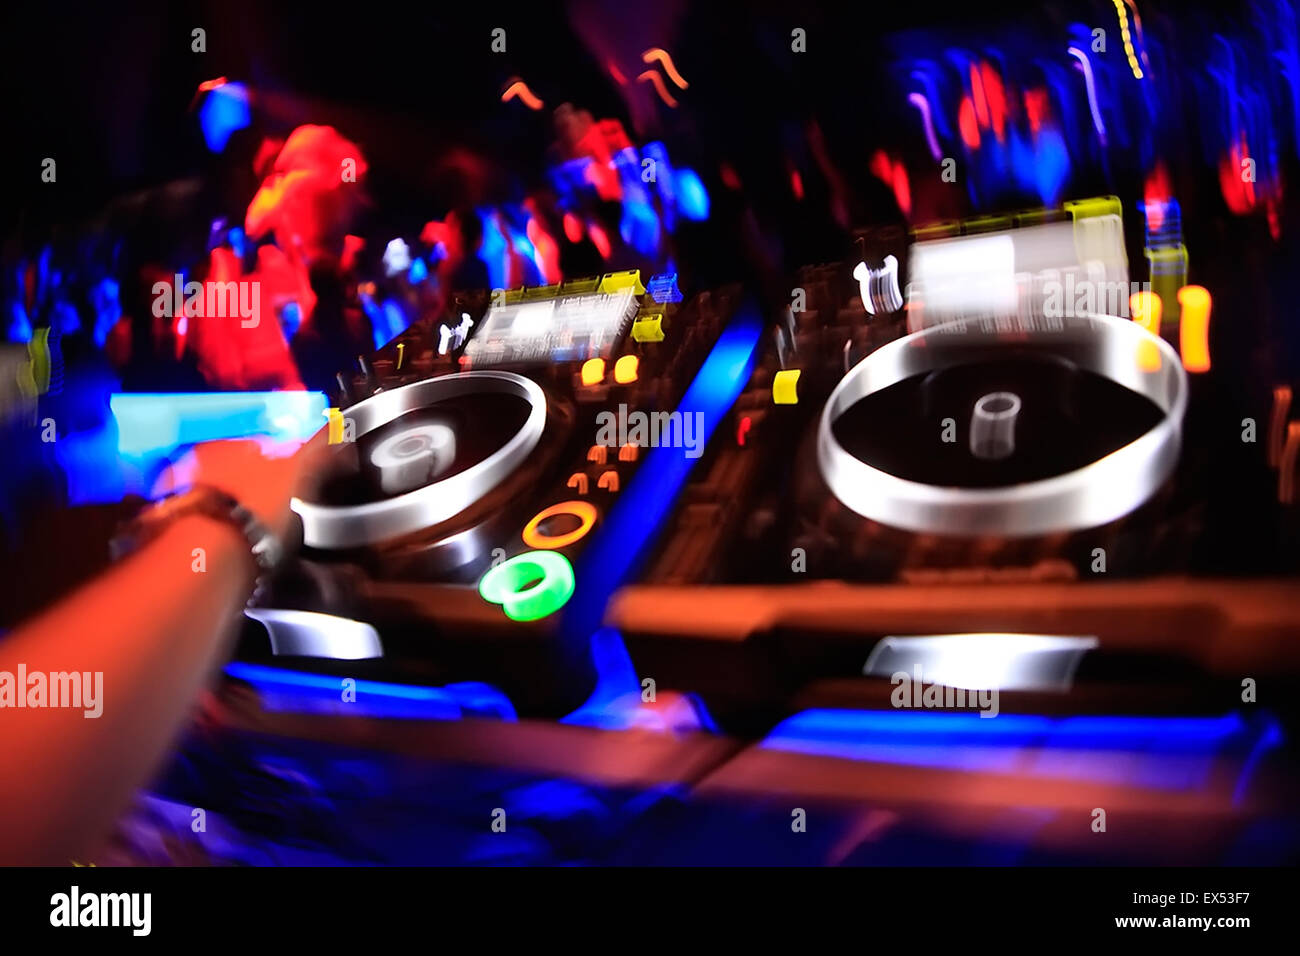 Colourful motion image of a DJ hand synchronising mysic on the decks / sound mixing devices. Athens nightclub, Greece. - Stock Image